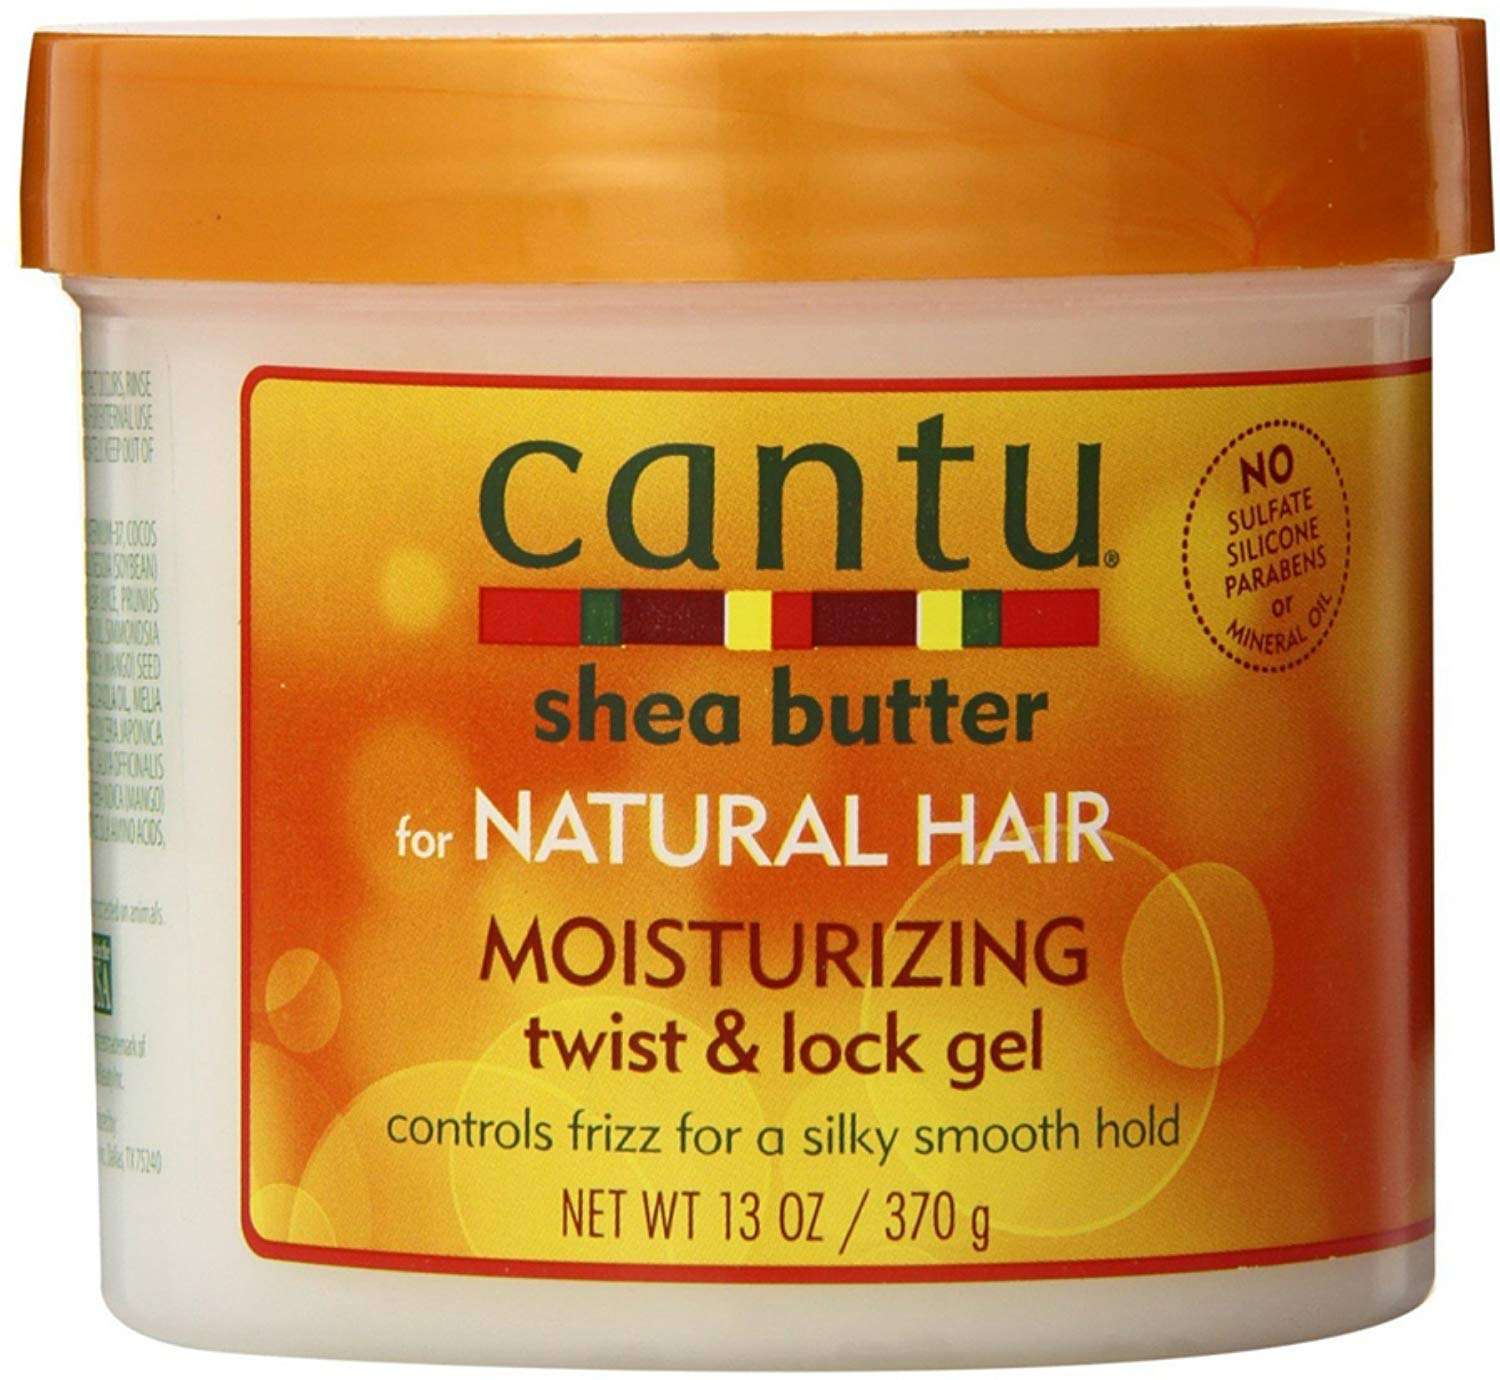 Cantu Shea Butter For Natural Hair Moisturizing Twist & Lock Gel, 13 ounce (Pack of 4)